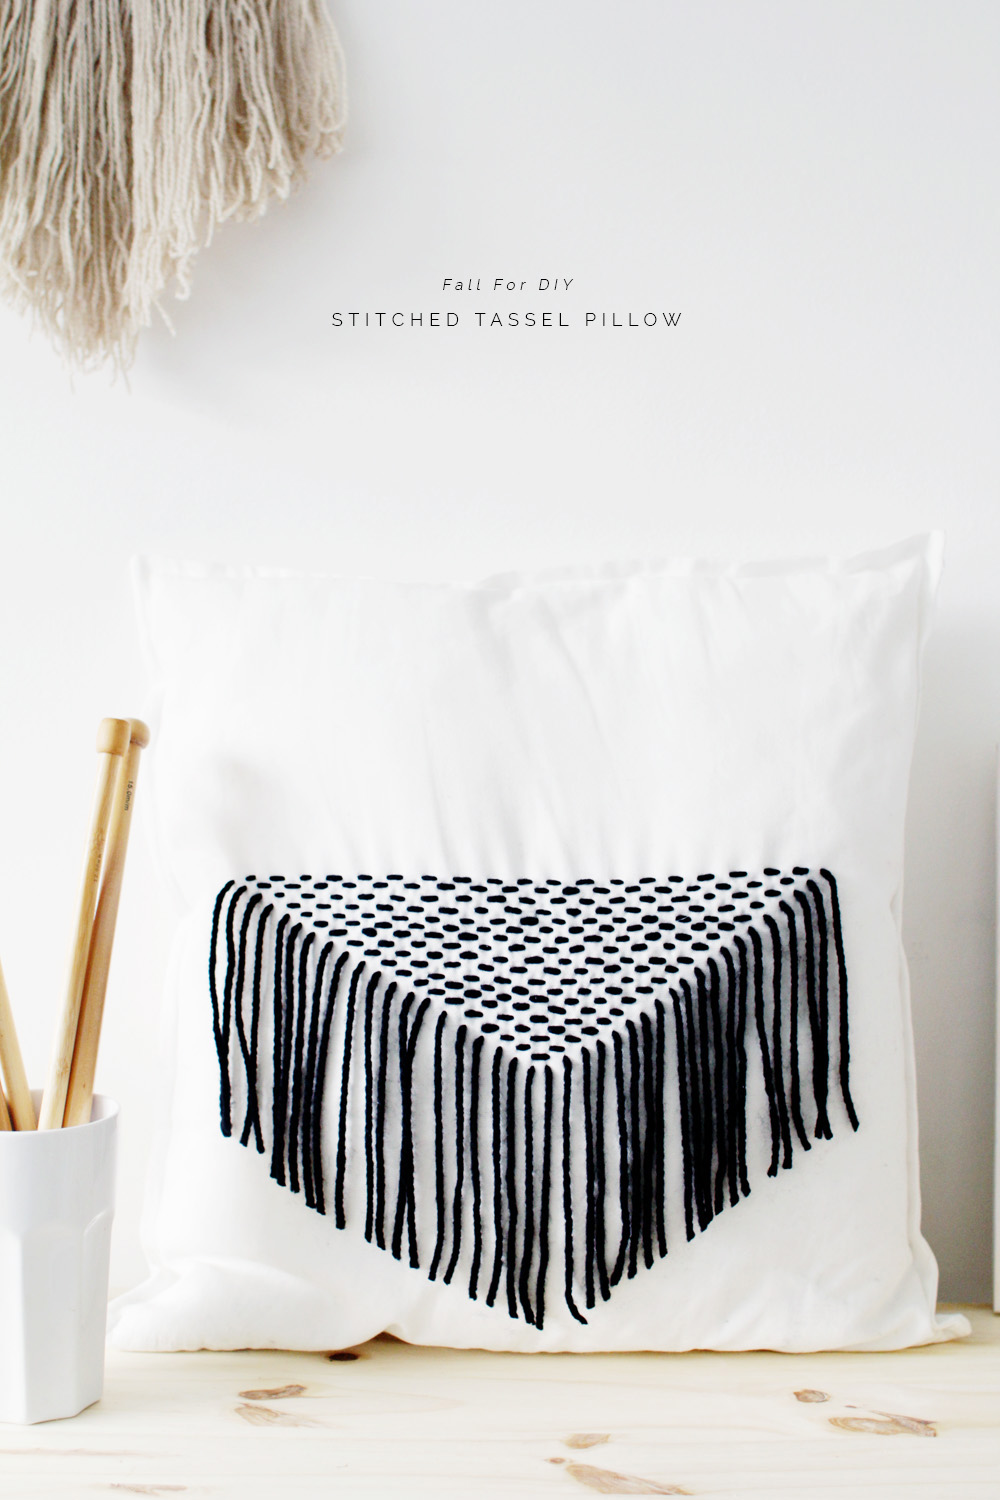 Fall For DIY Stitched Tassels Cushion tutorial